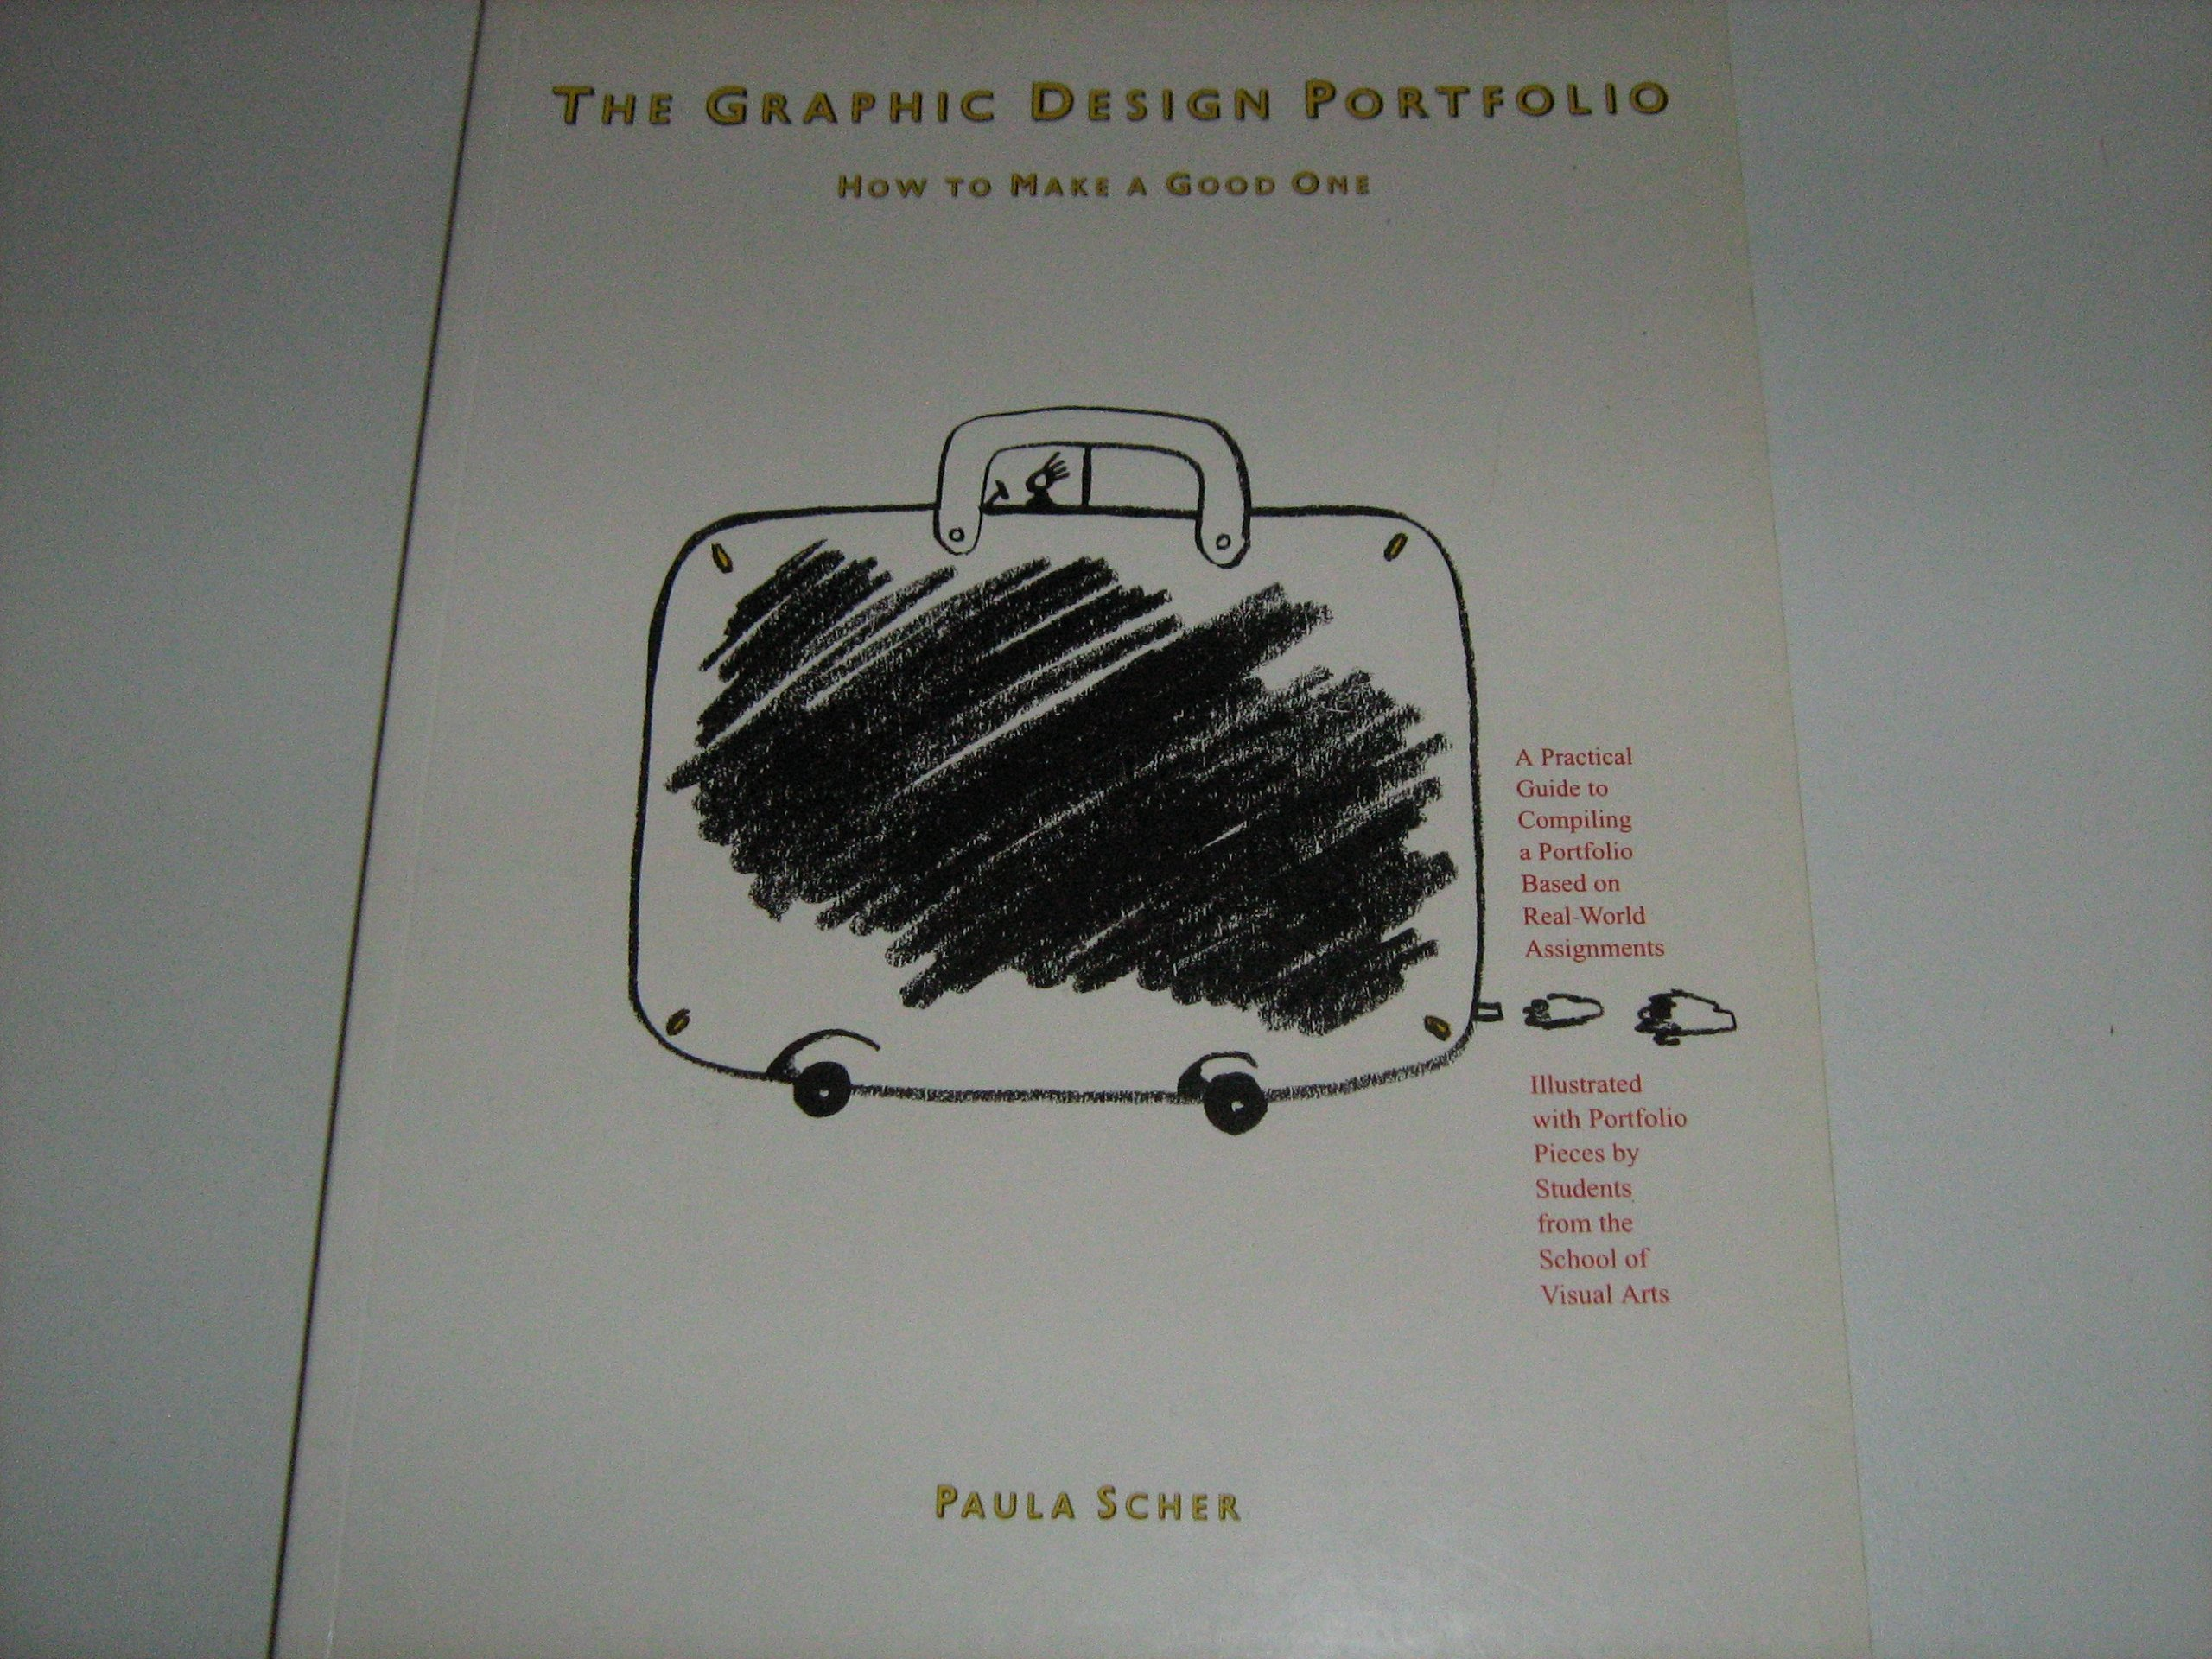 Graphic Design Portfolio: How to Make a Good One